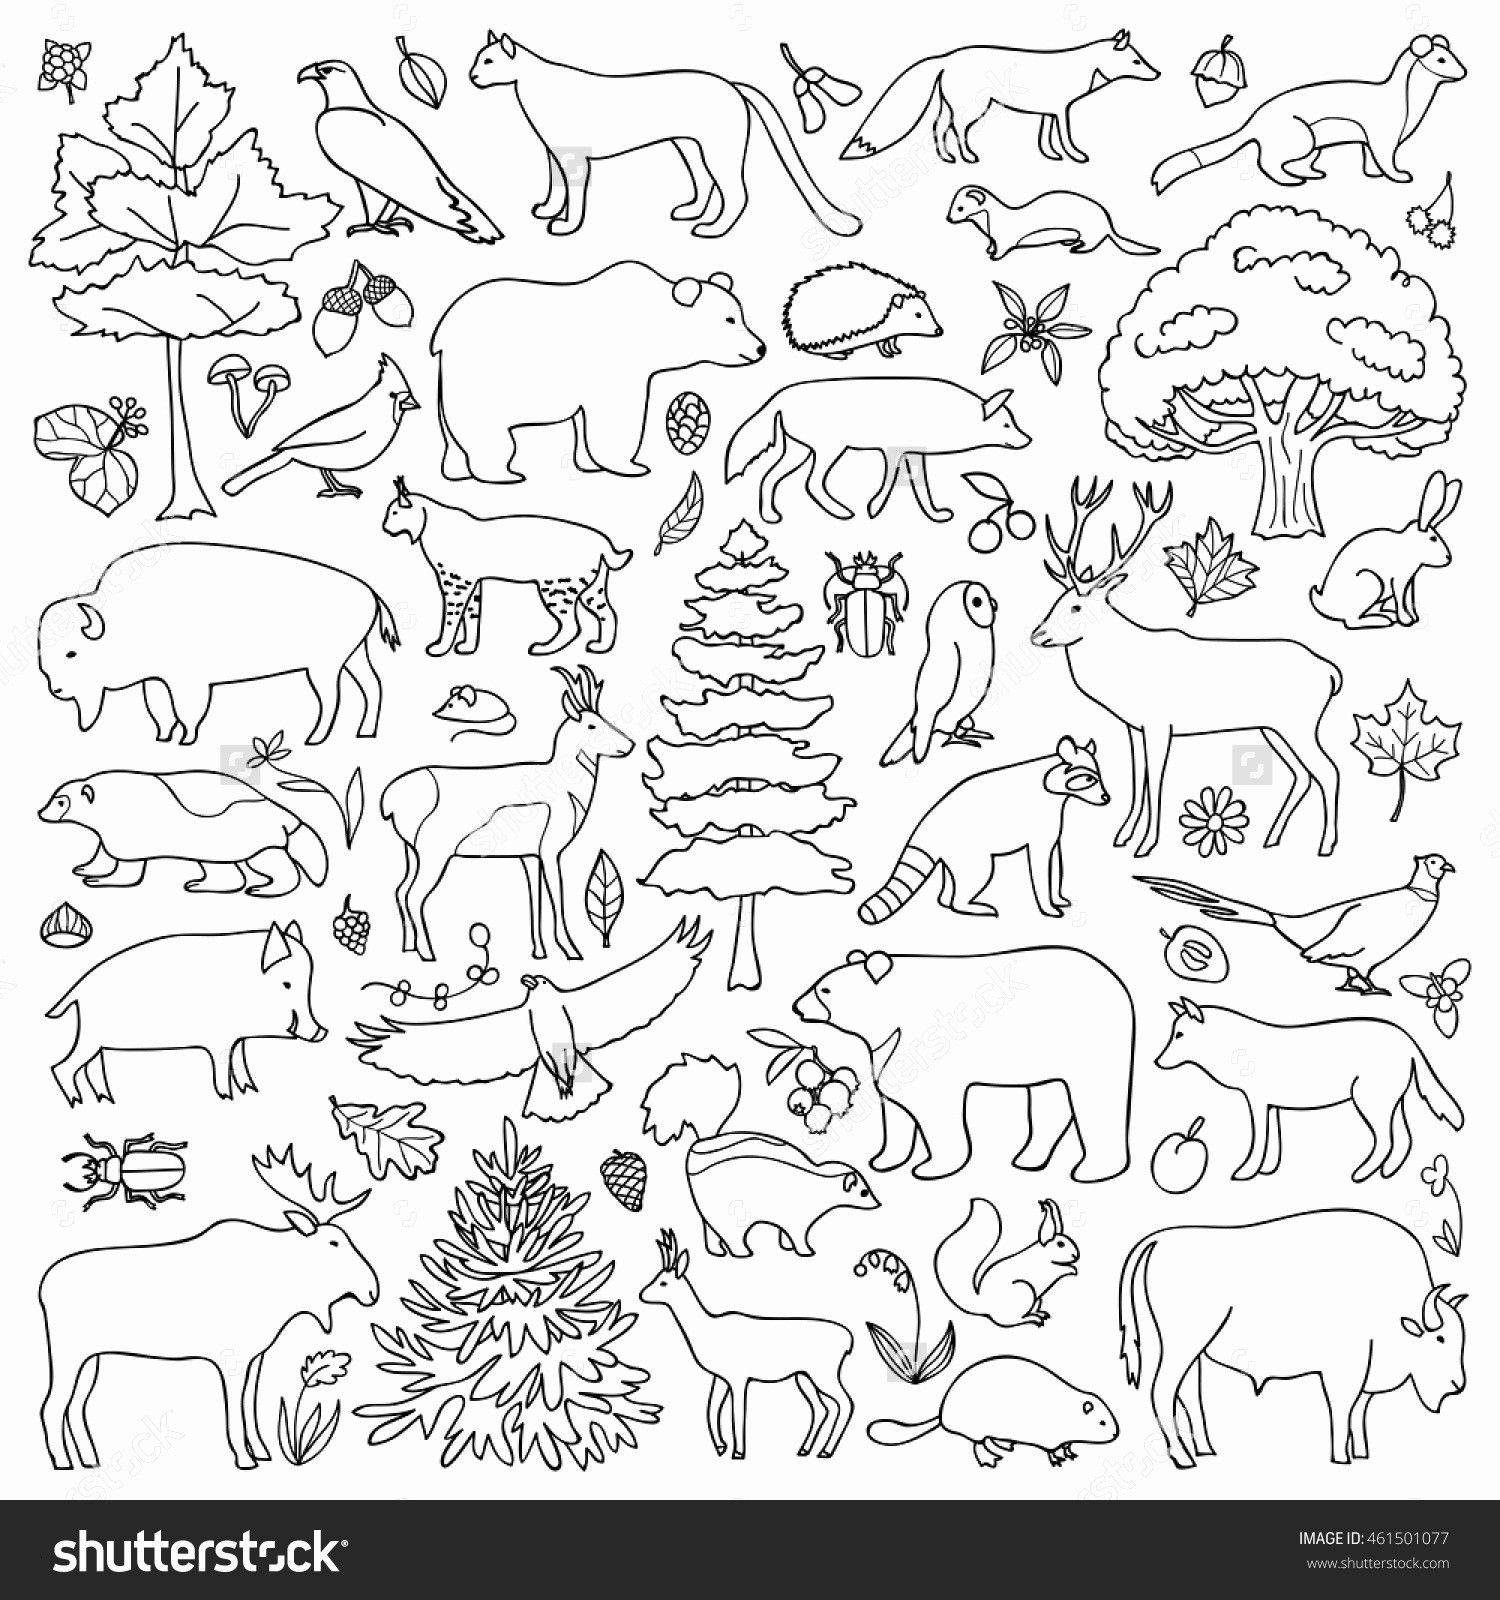 Pin By Petra Jiraskova On Lesni Klub Animal Coloring Pages Forest Coloring Book Preschool Coloring Pages [ 1600 x 1500 Pixel ]